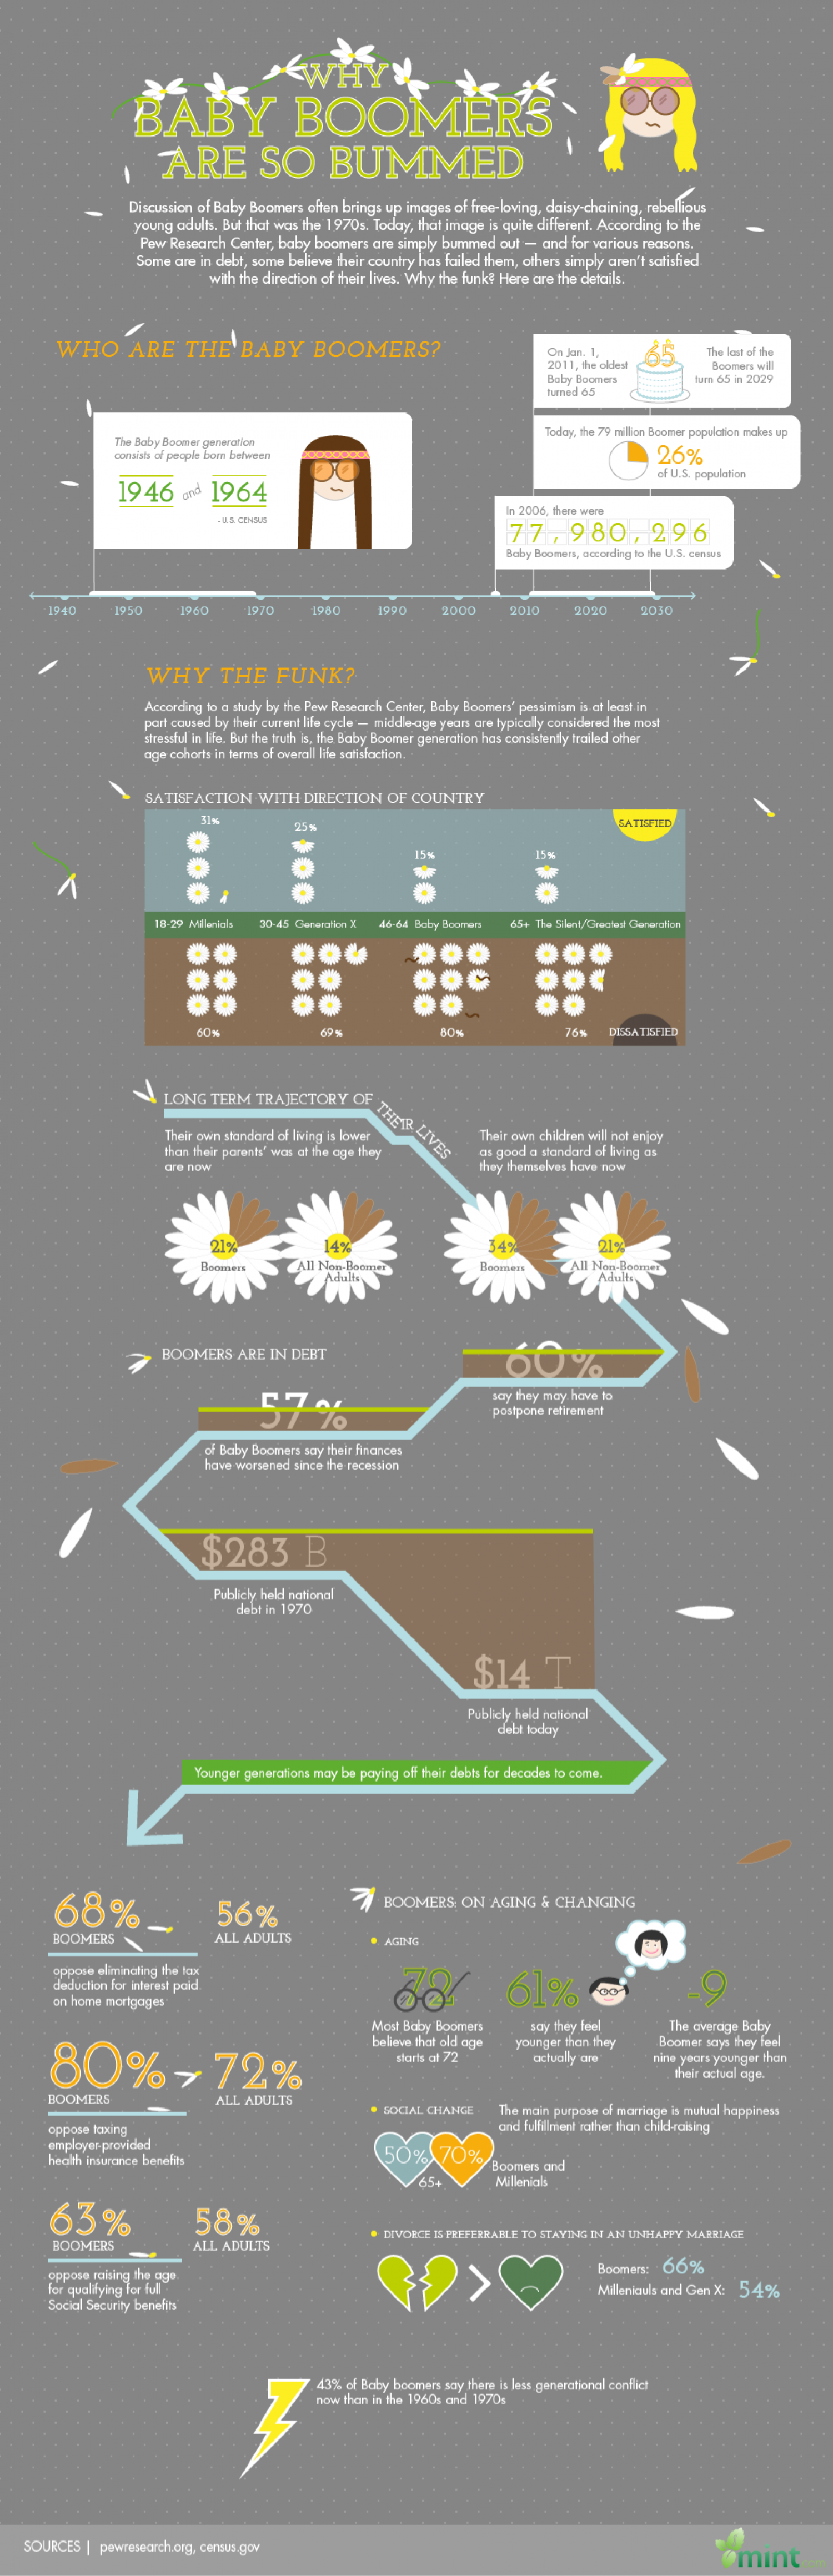 Why Baby Boomers Are So Bummed Infographic